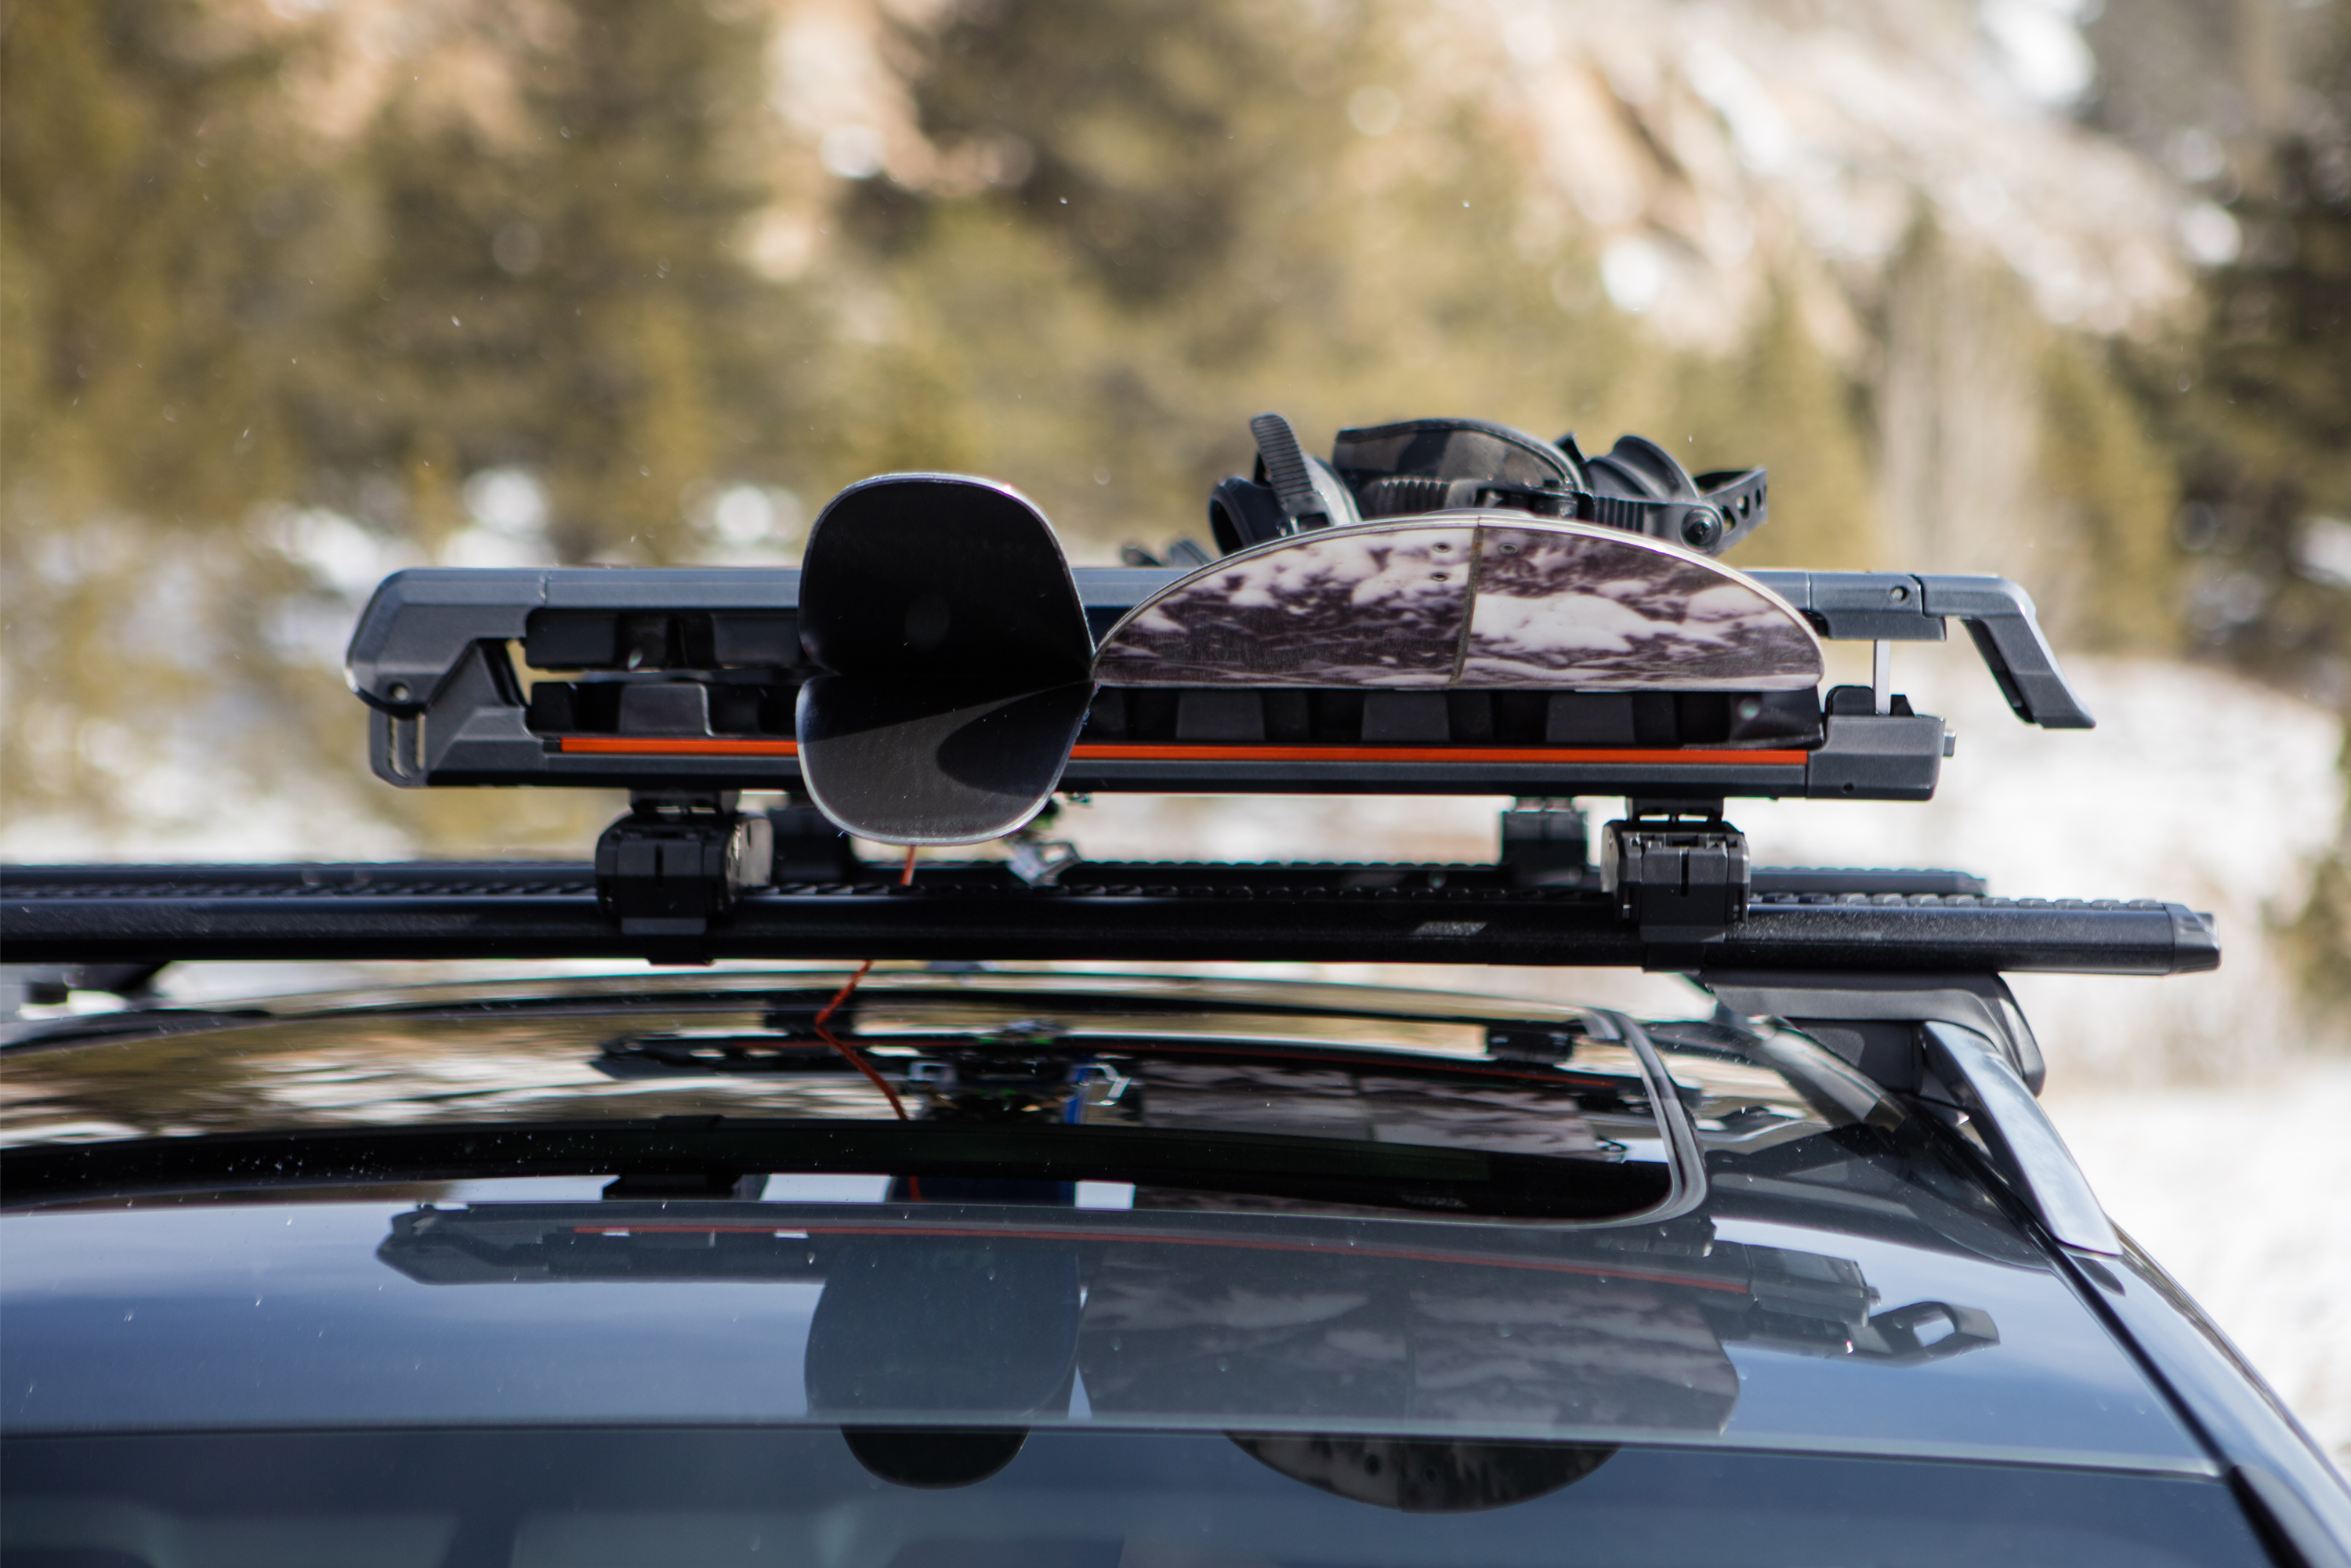 DOOR SKIS ON ROOF RACK 6 PAIRES SKI 4 SURFS